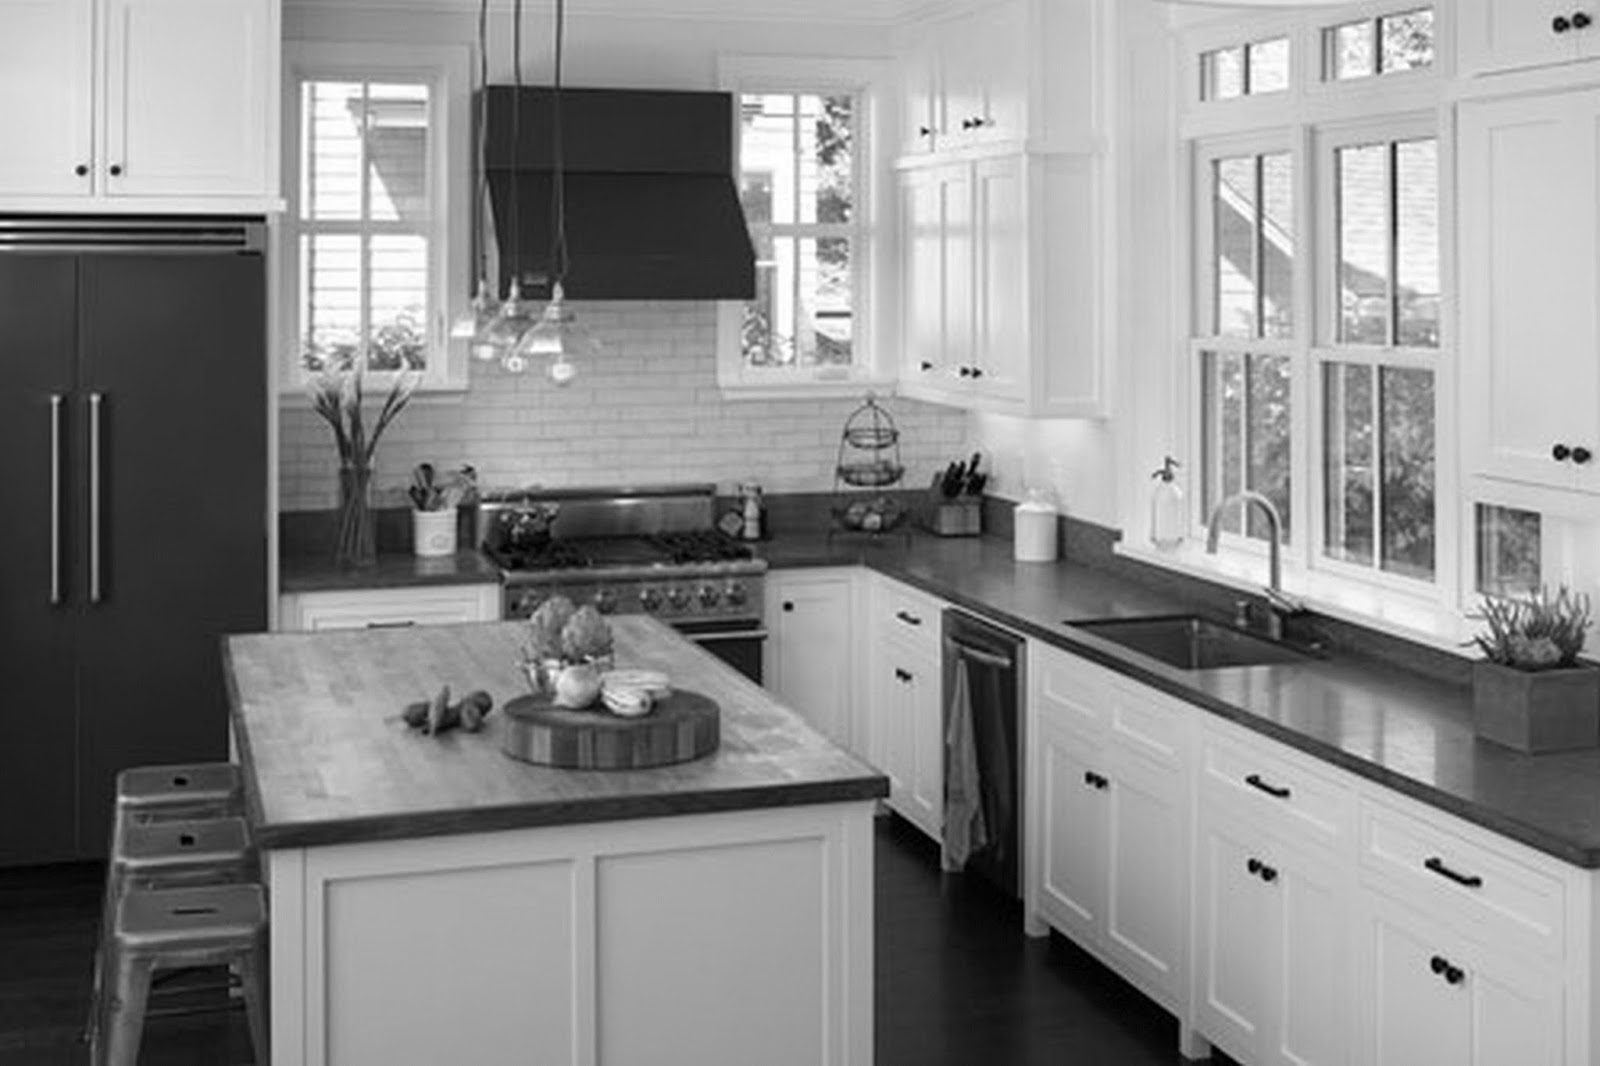 American Plastic Toys My Very Own Gourmet Kitchen Kitchen Designs With Breakfast Bar Pictures Of White Kitchen Cabinets Kitchen Island With Bench Seating Price Pfister Kitchen Faucet Removal